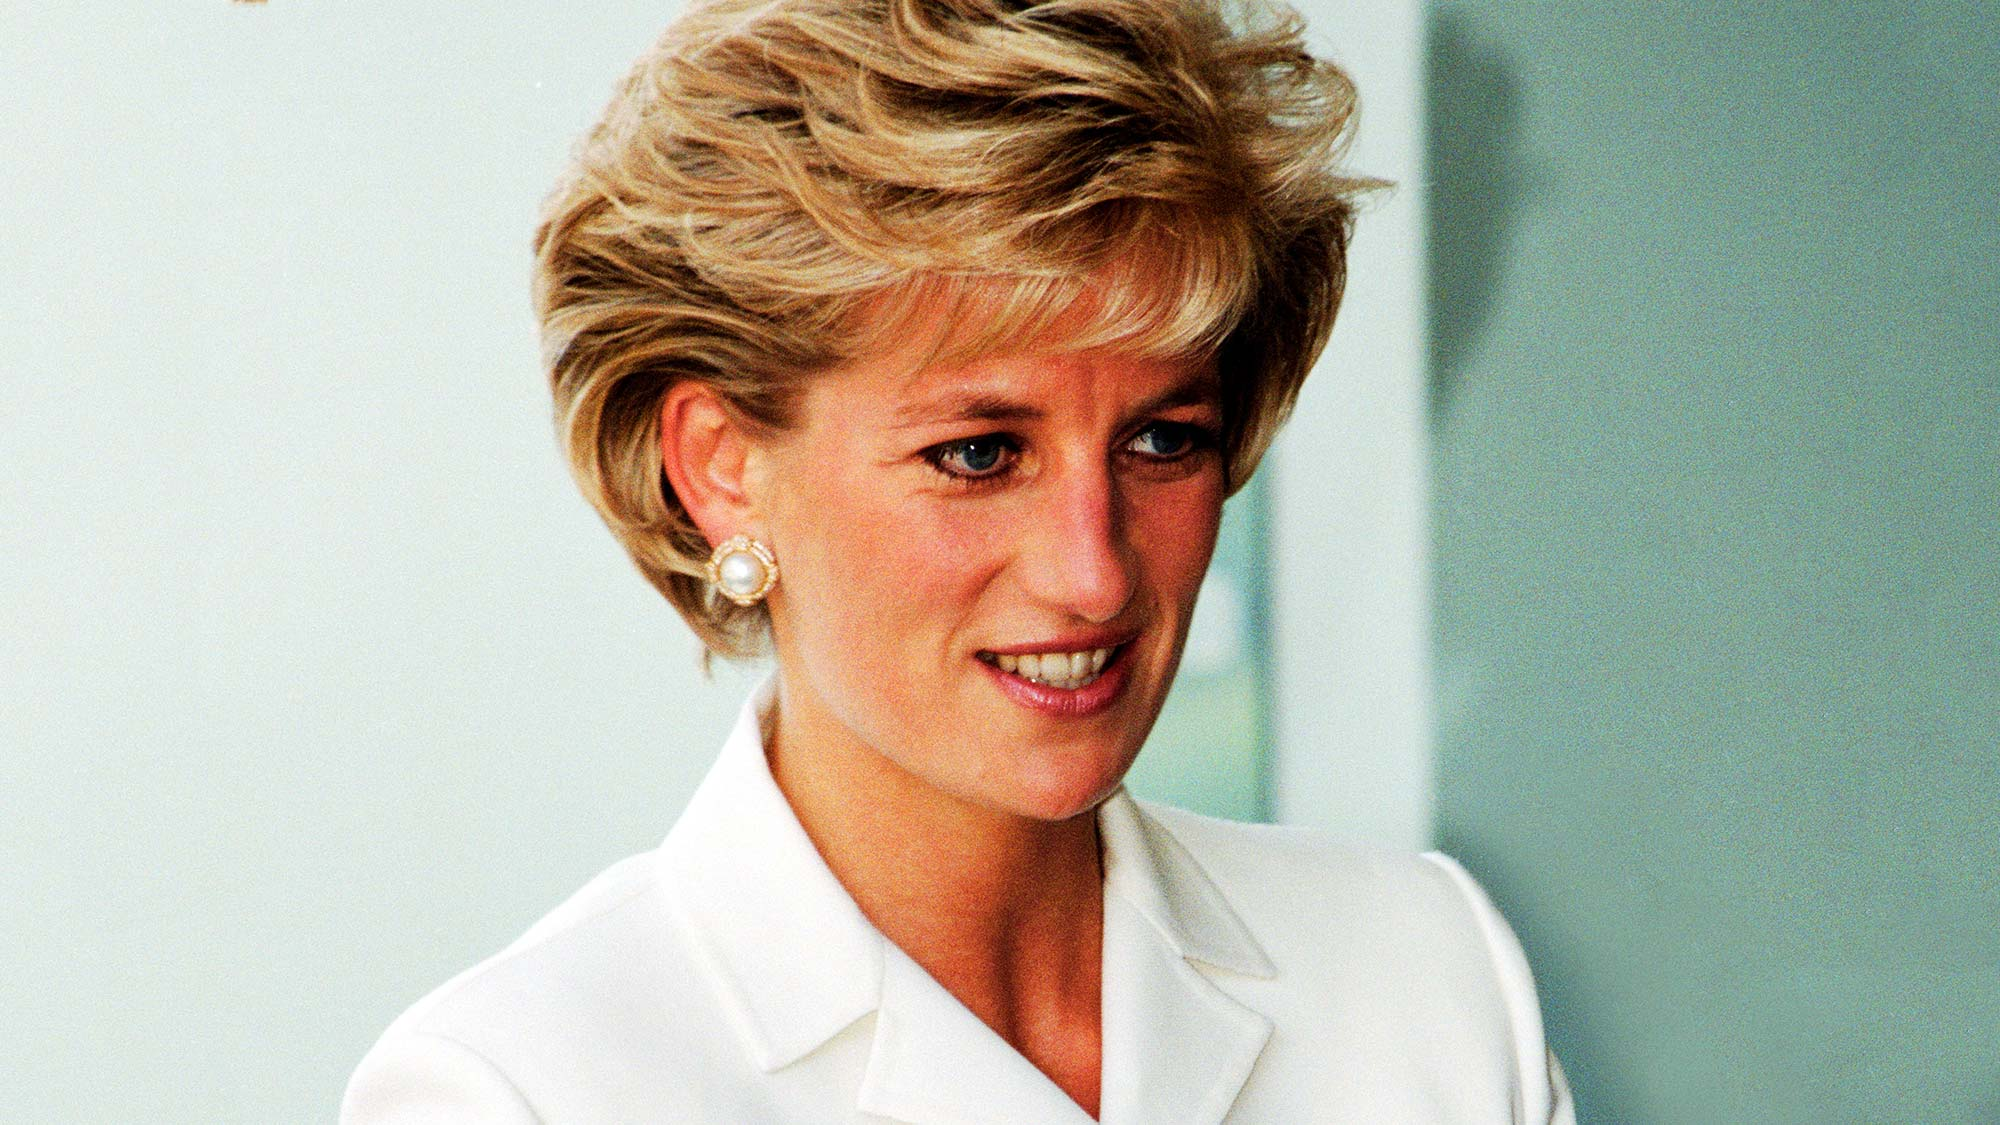 Princess diana hair the story behind her iconic style for Diana pics